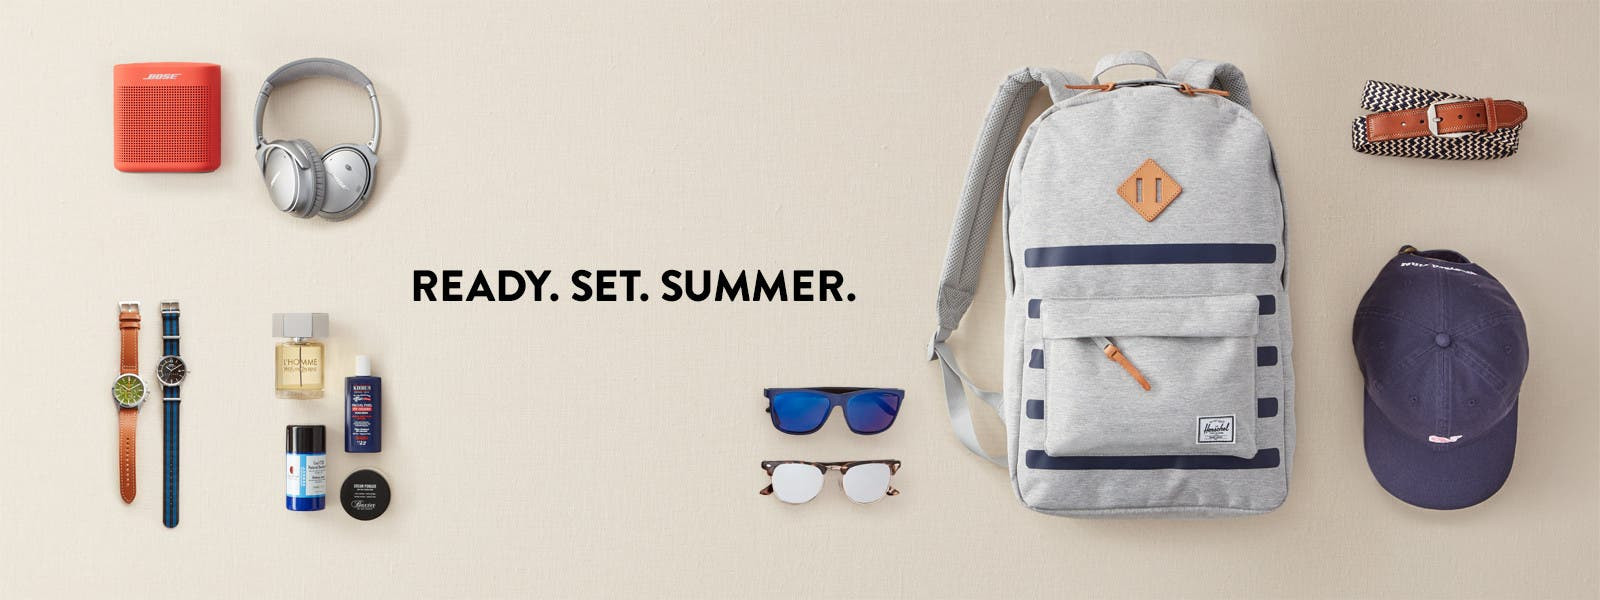 Summer-ready accessories for men.